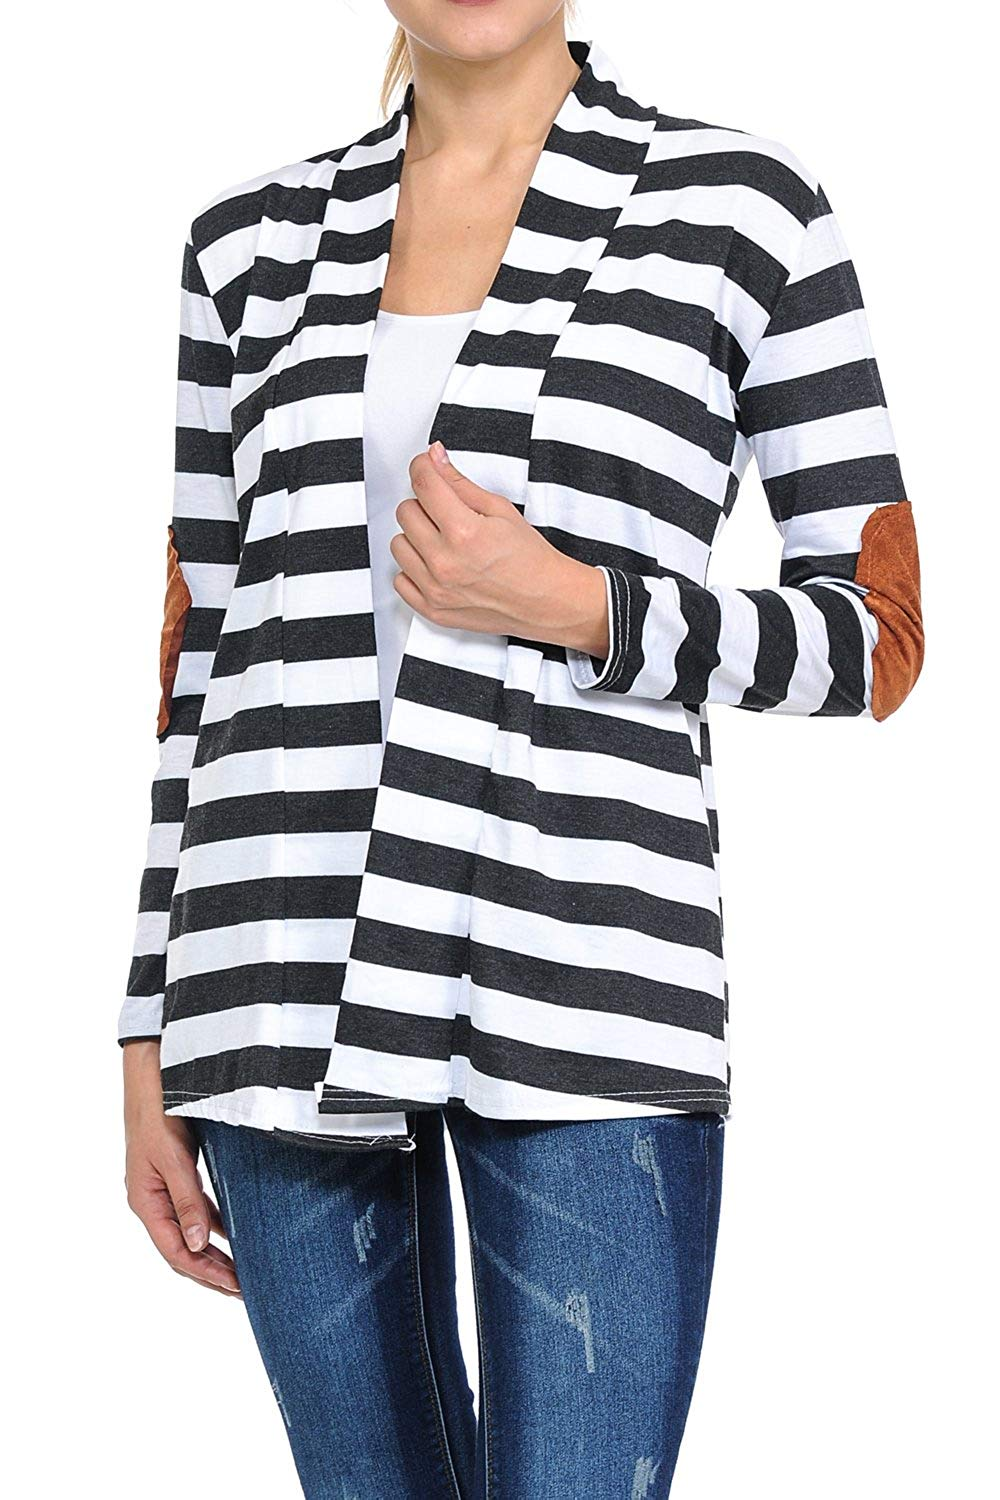 b771ffcf2cf Get Quotations · GUVU Womens Shawl Collar Striped Pattern Long Sleeve Elbow  Patch Open Front Sweater Jacket